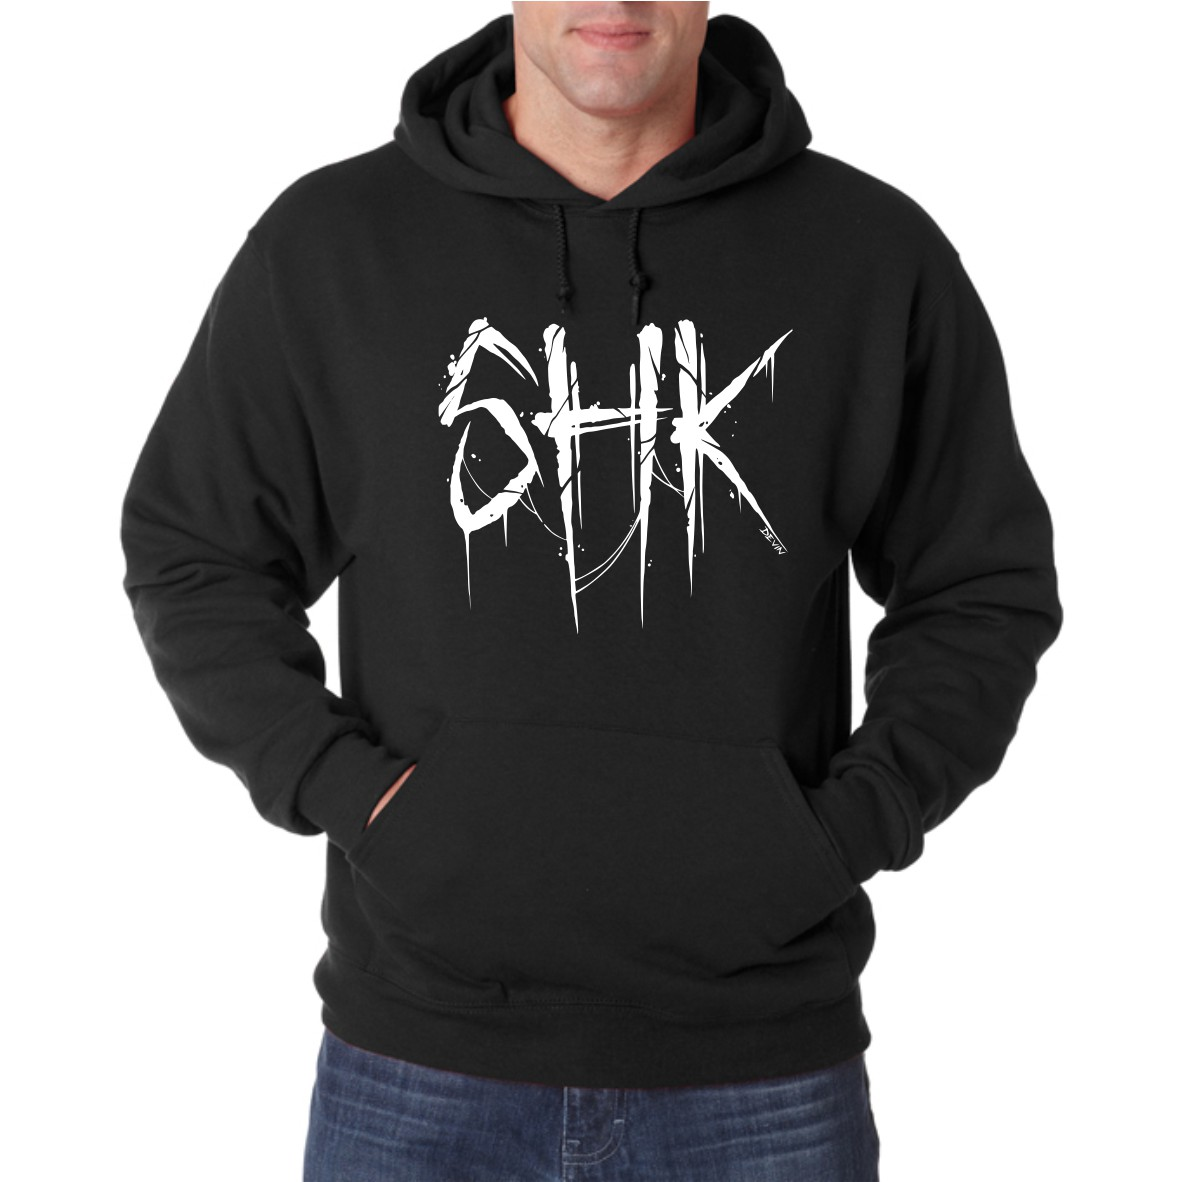 SHK LOGO HOODED